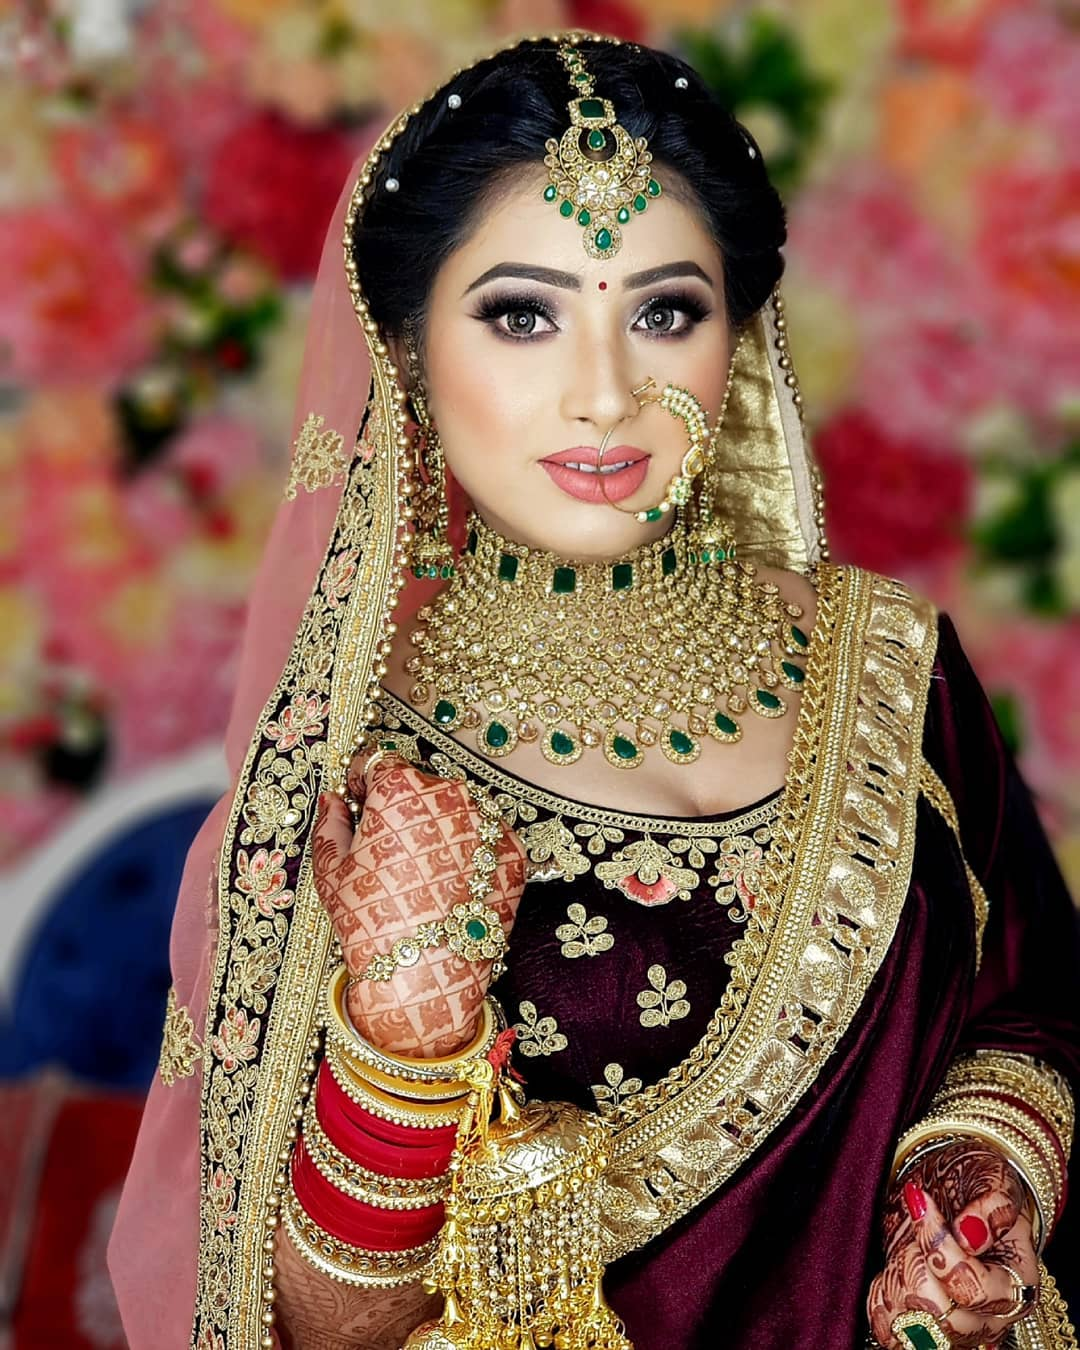 Gleam and shine: Indian Makeup and Jewelry Ideas Inspired from Real Brides